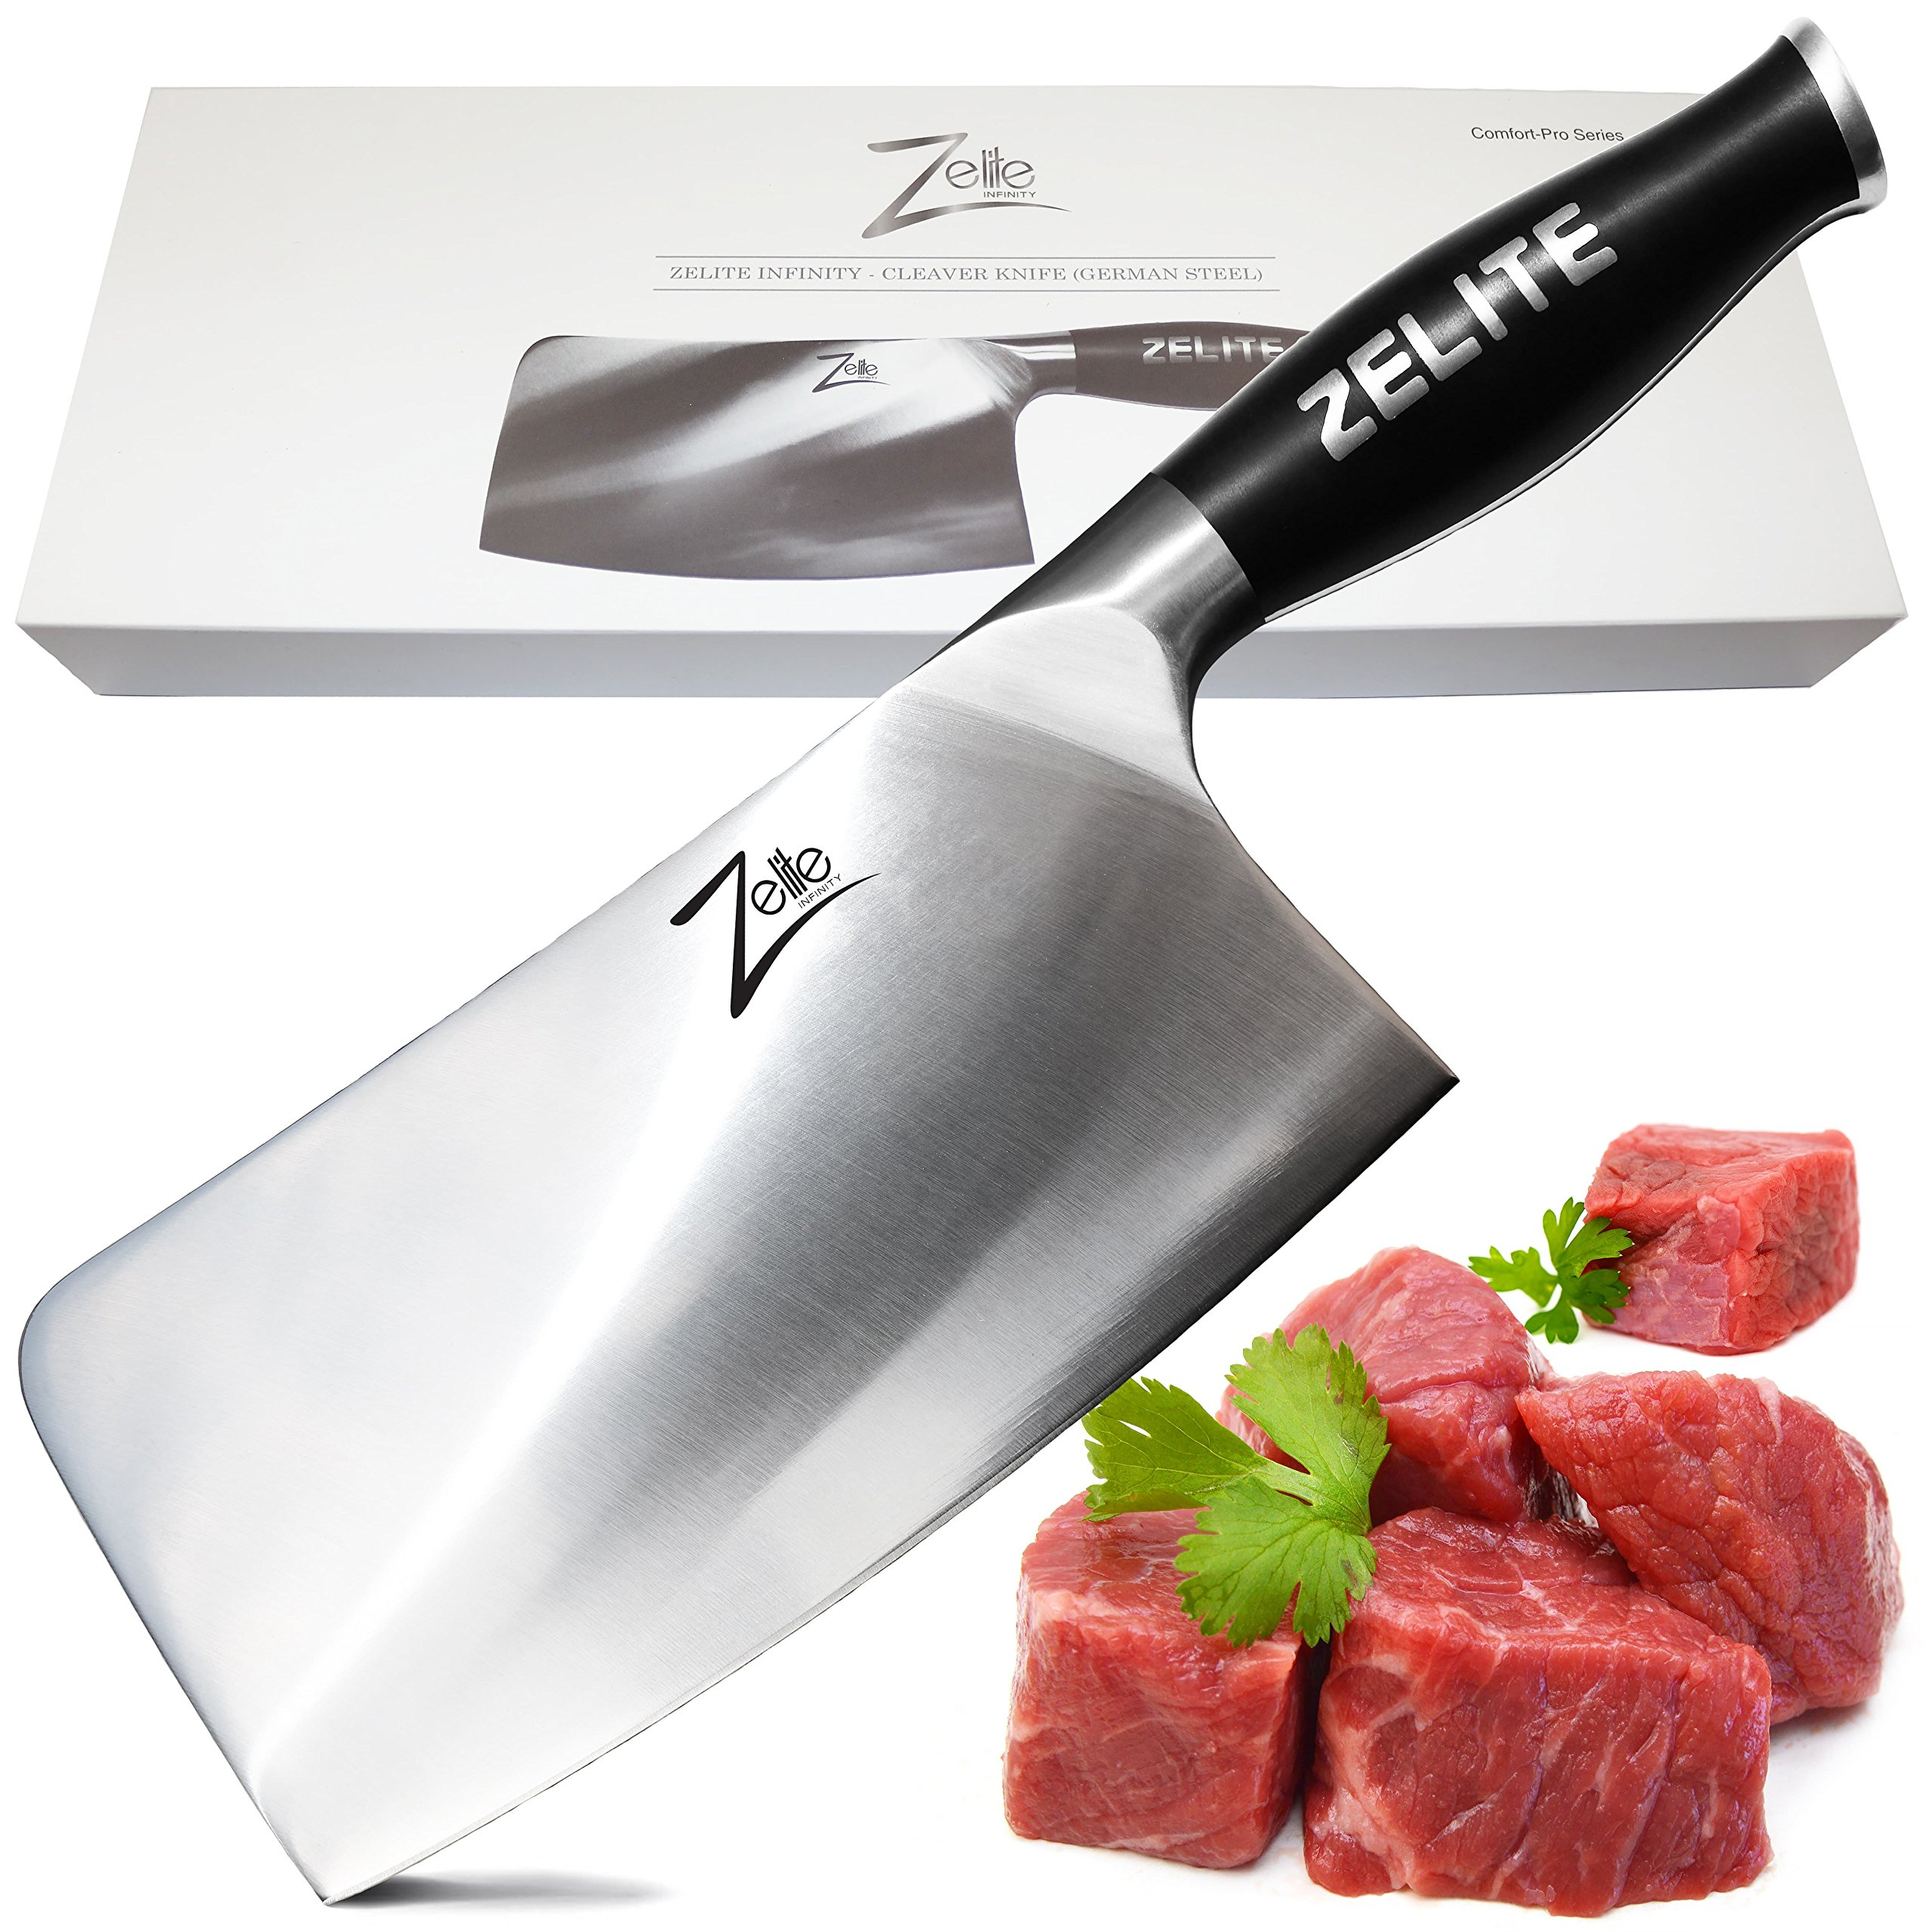 Zelite Infinity Cleaver Knife - Comfort-Pro Series - High Carbon Stainless Steel Knives X50 Cr MoV 15 >> 7'' (178mm)